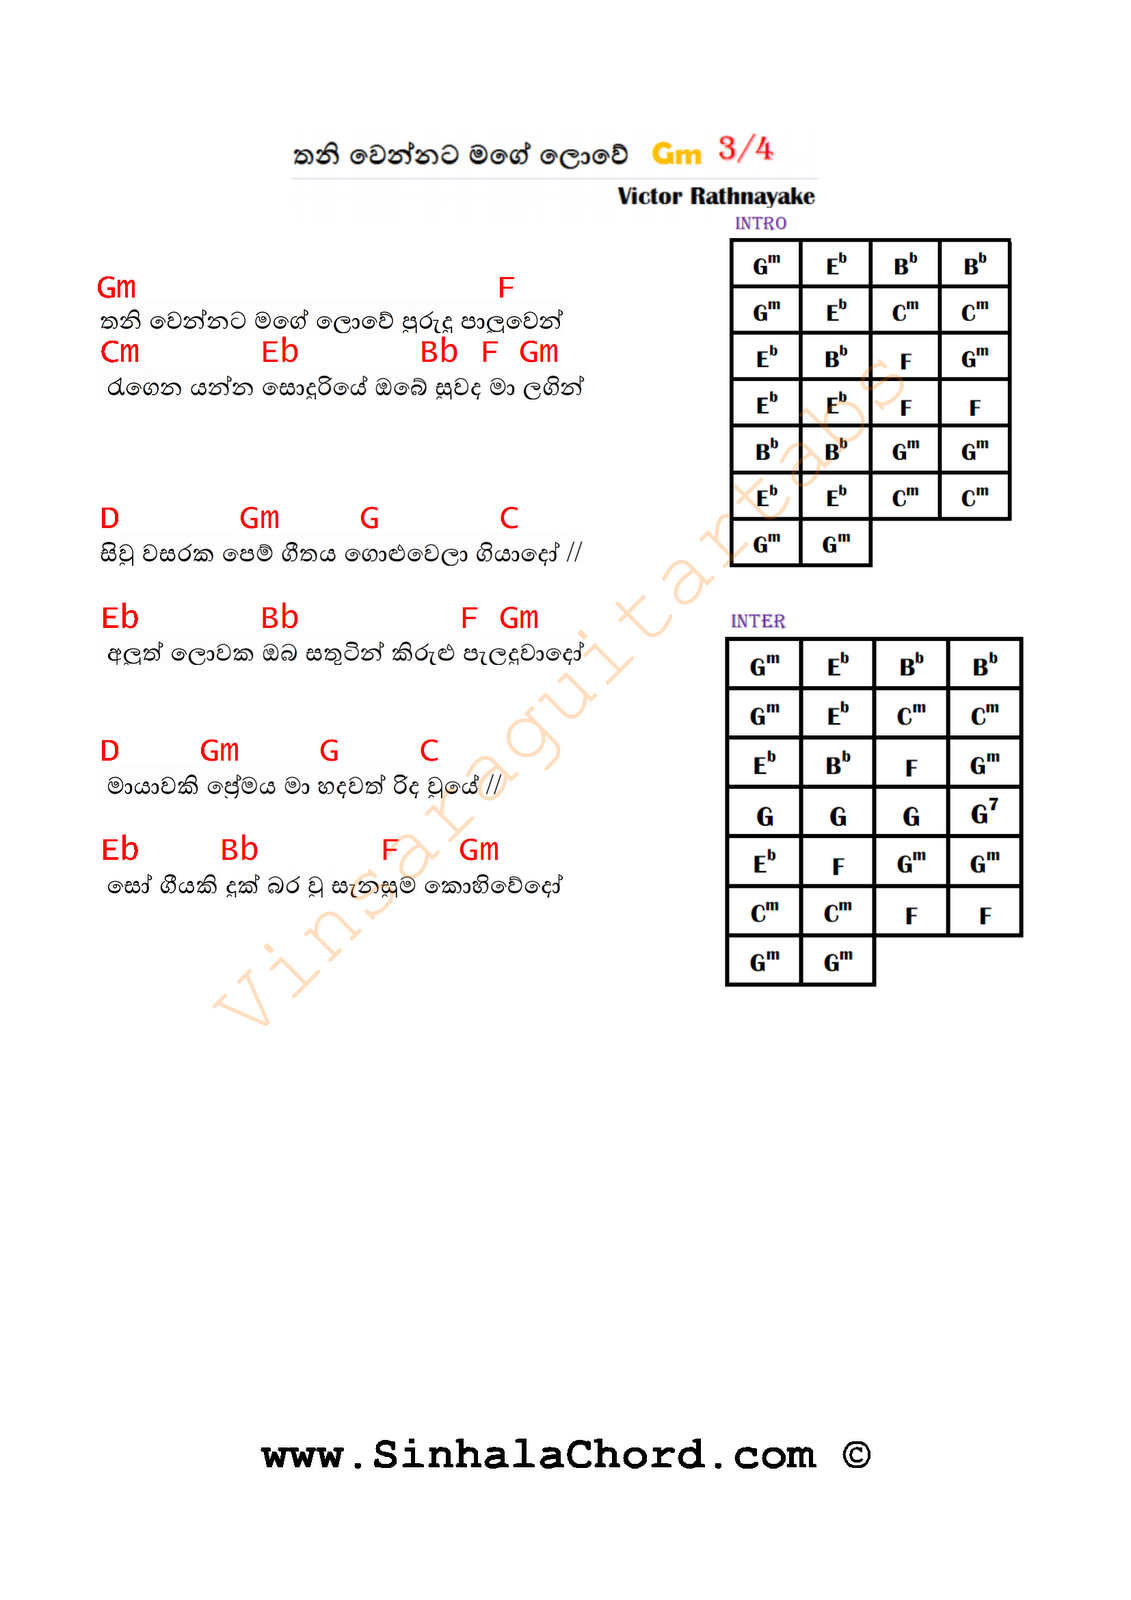 Thaniwennata Mage Lowe Guitar Chords : Sinhala Guitar Chords:Sinhala Songs Chords:Guitar Tabs ...